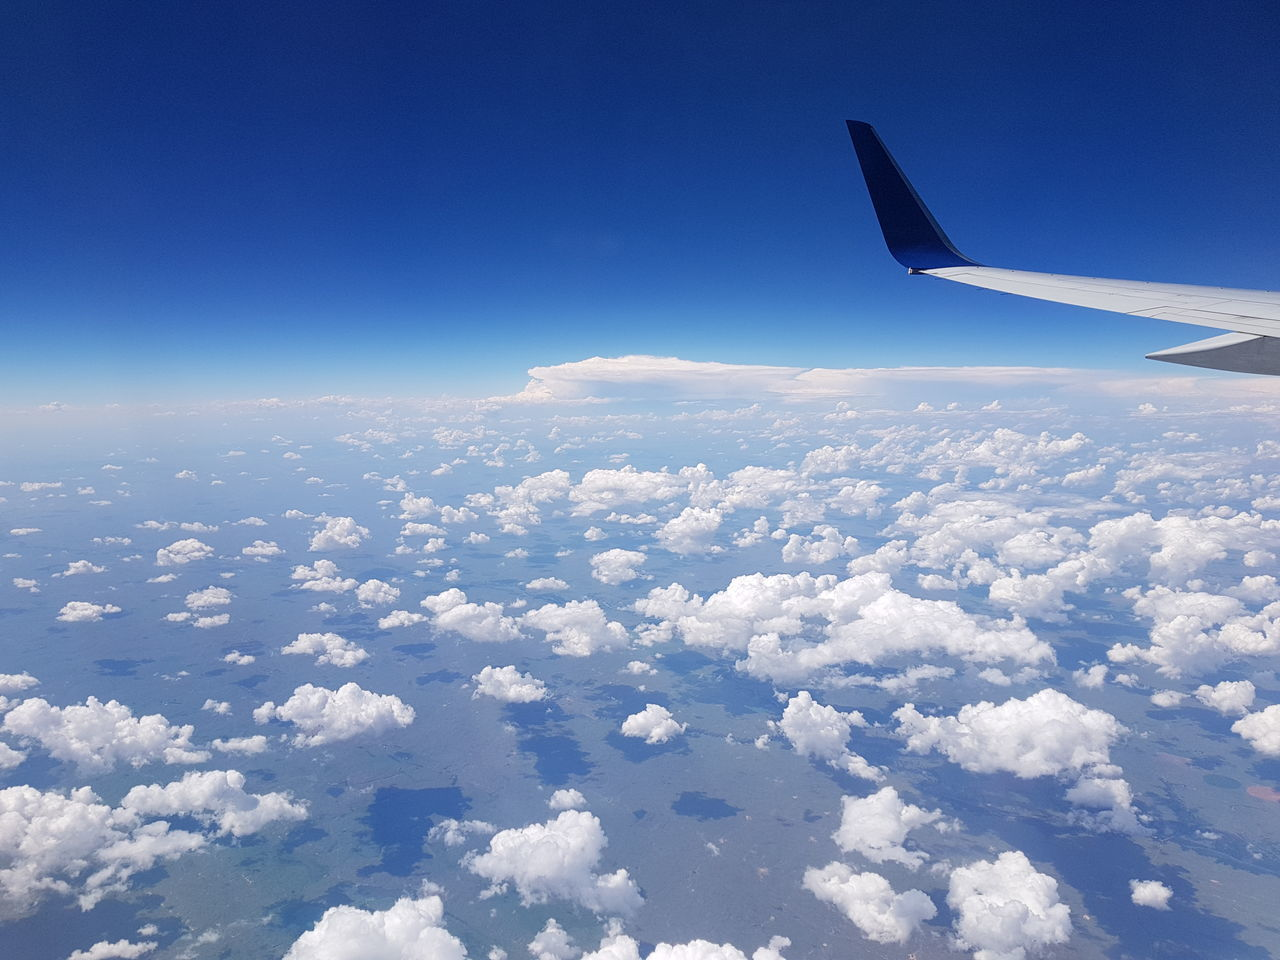 AERIAL VIEW OF AIRCRAFT WING OVER CLOUDS